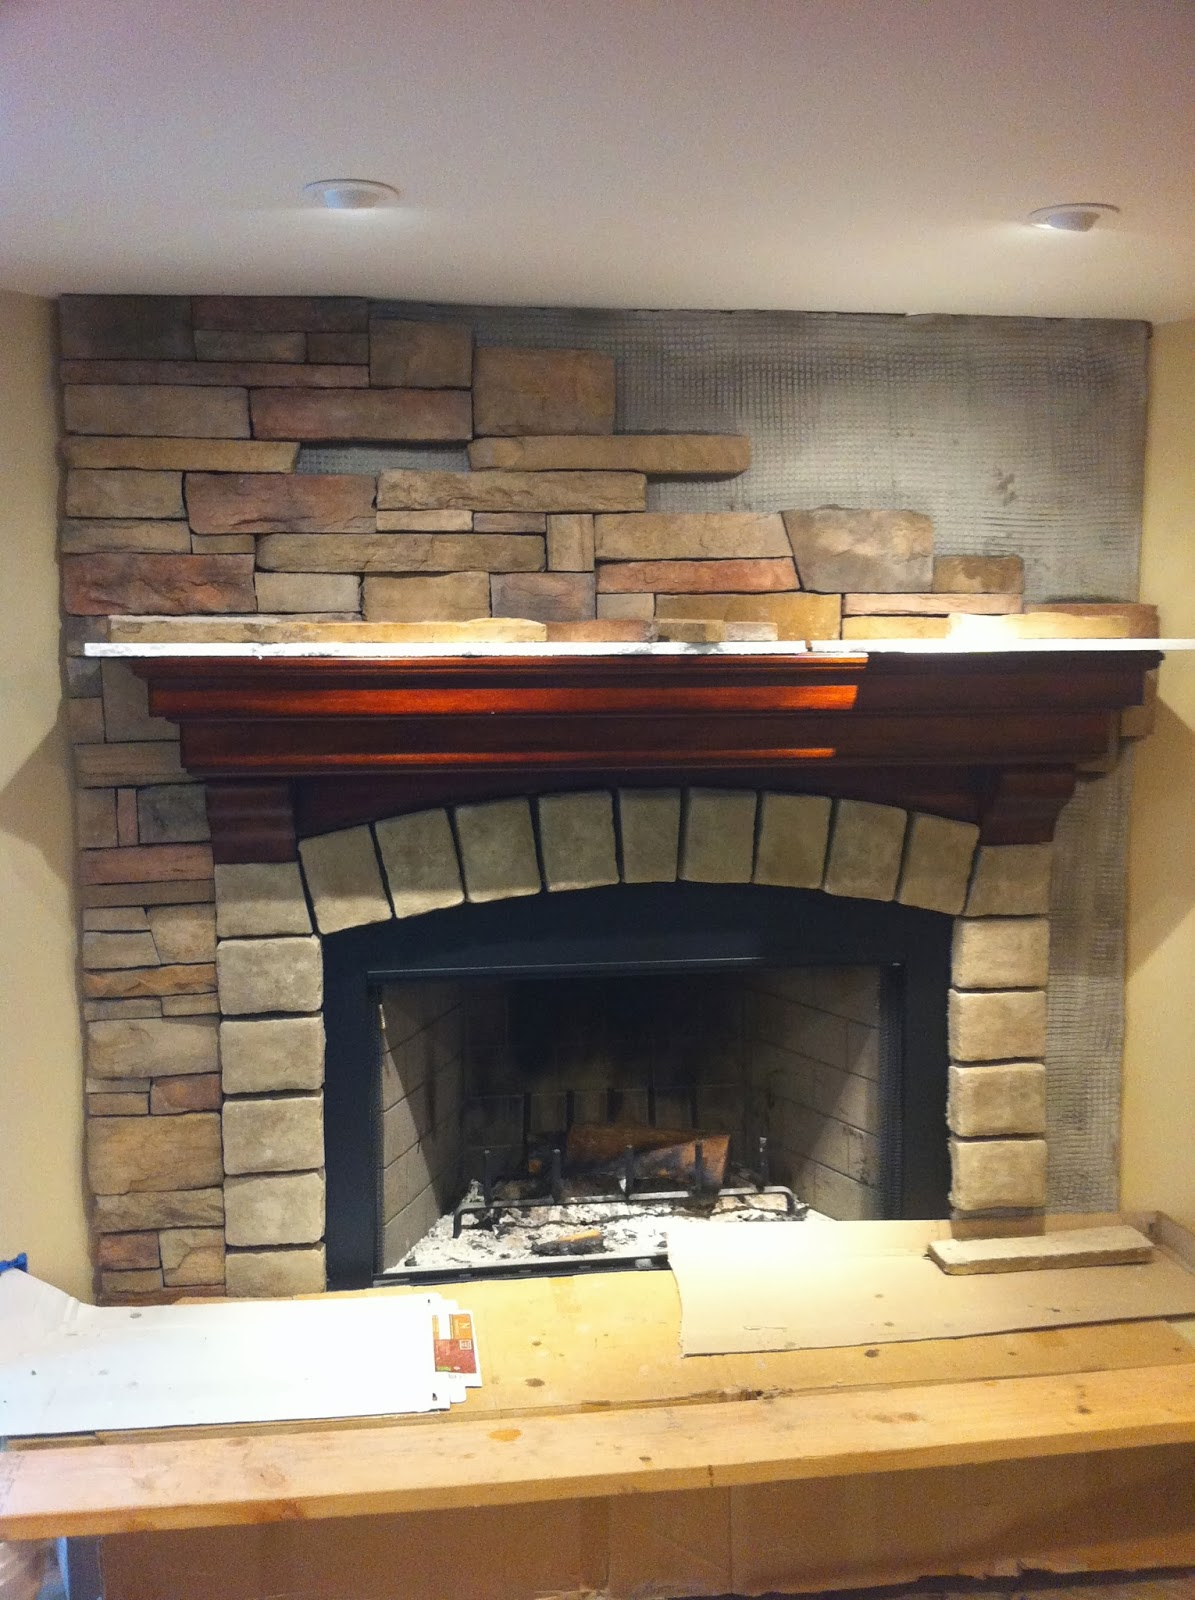 Golden boys and me stone fireplace details sources for Corner stone fireplace